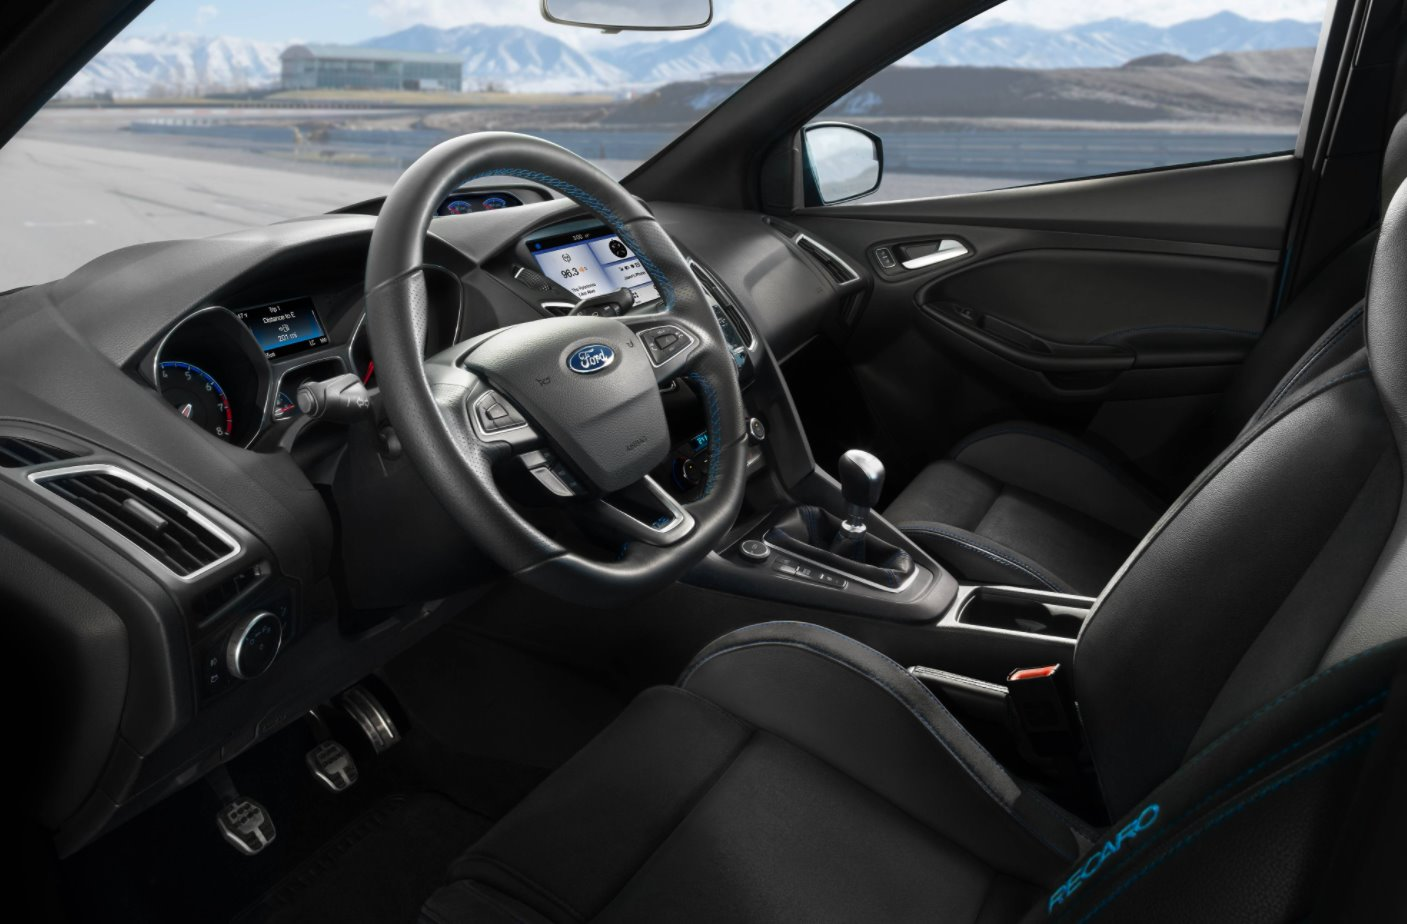 New 2022 Ford Focus RS Interior